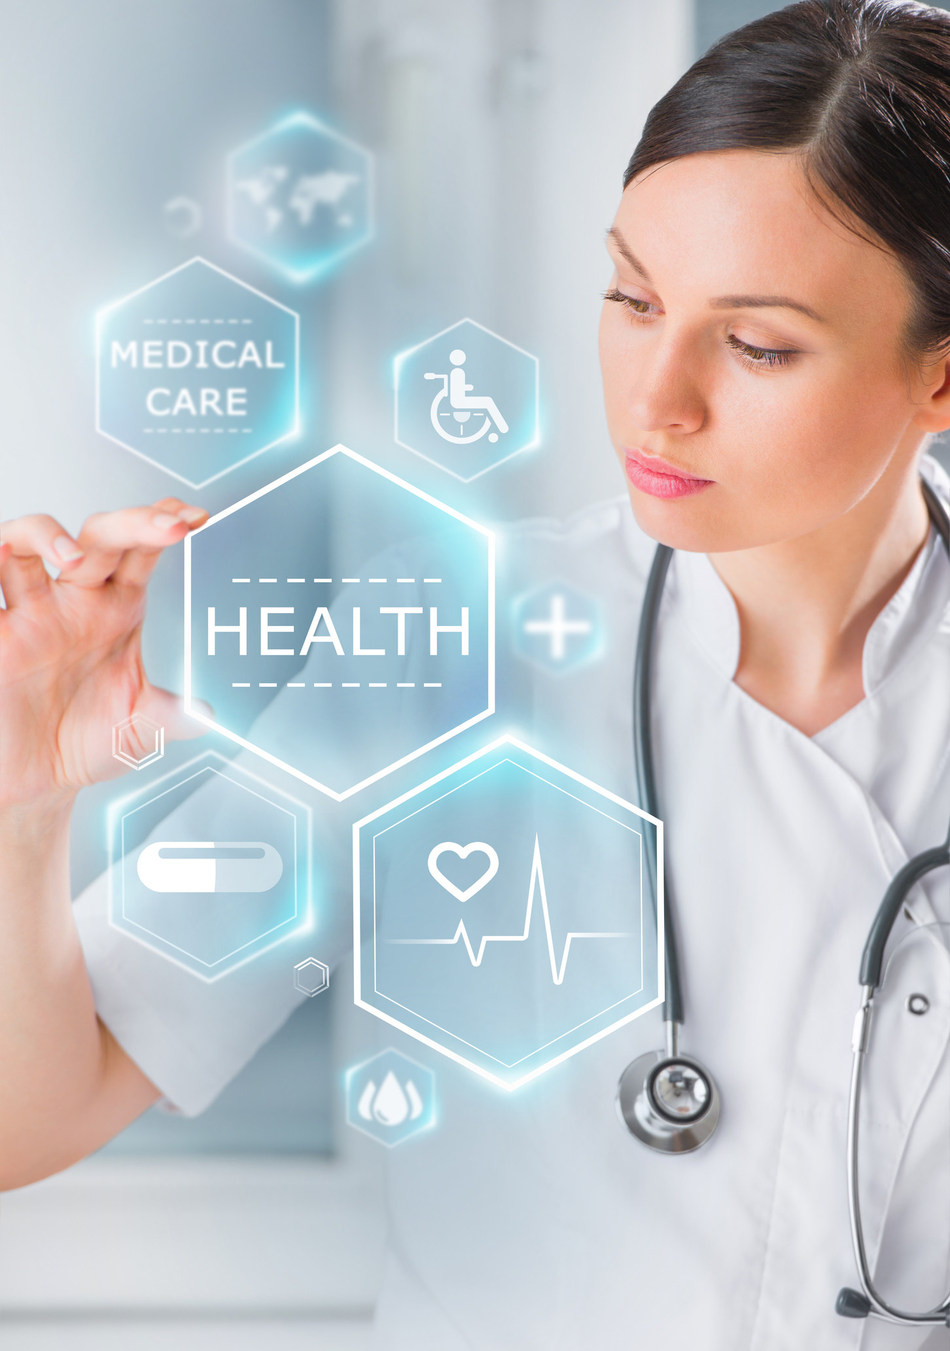 Value-based Care and Digital Patient Engagement Drive Growth Opportunities for Western Europe Hospital IT - Hospitals aim for patient data interoperability and cross-border data exchange, finds Frost & Sullivan's Transformational Health team